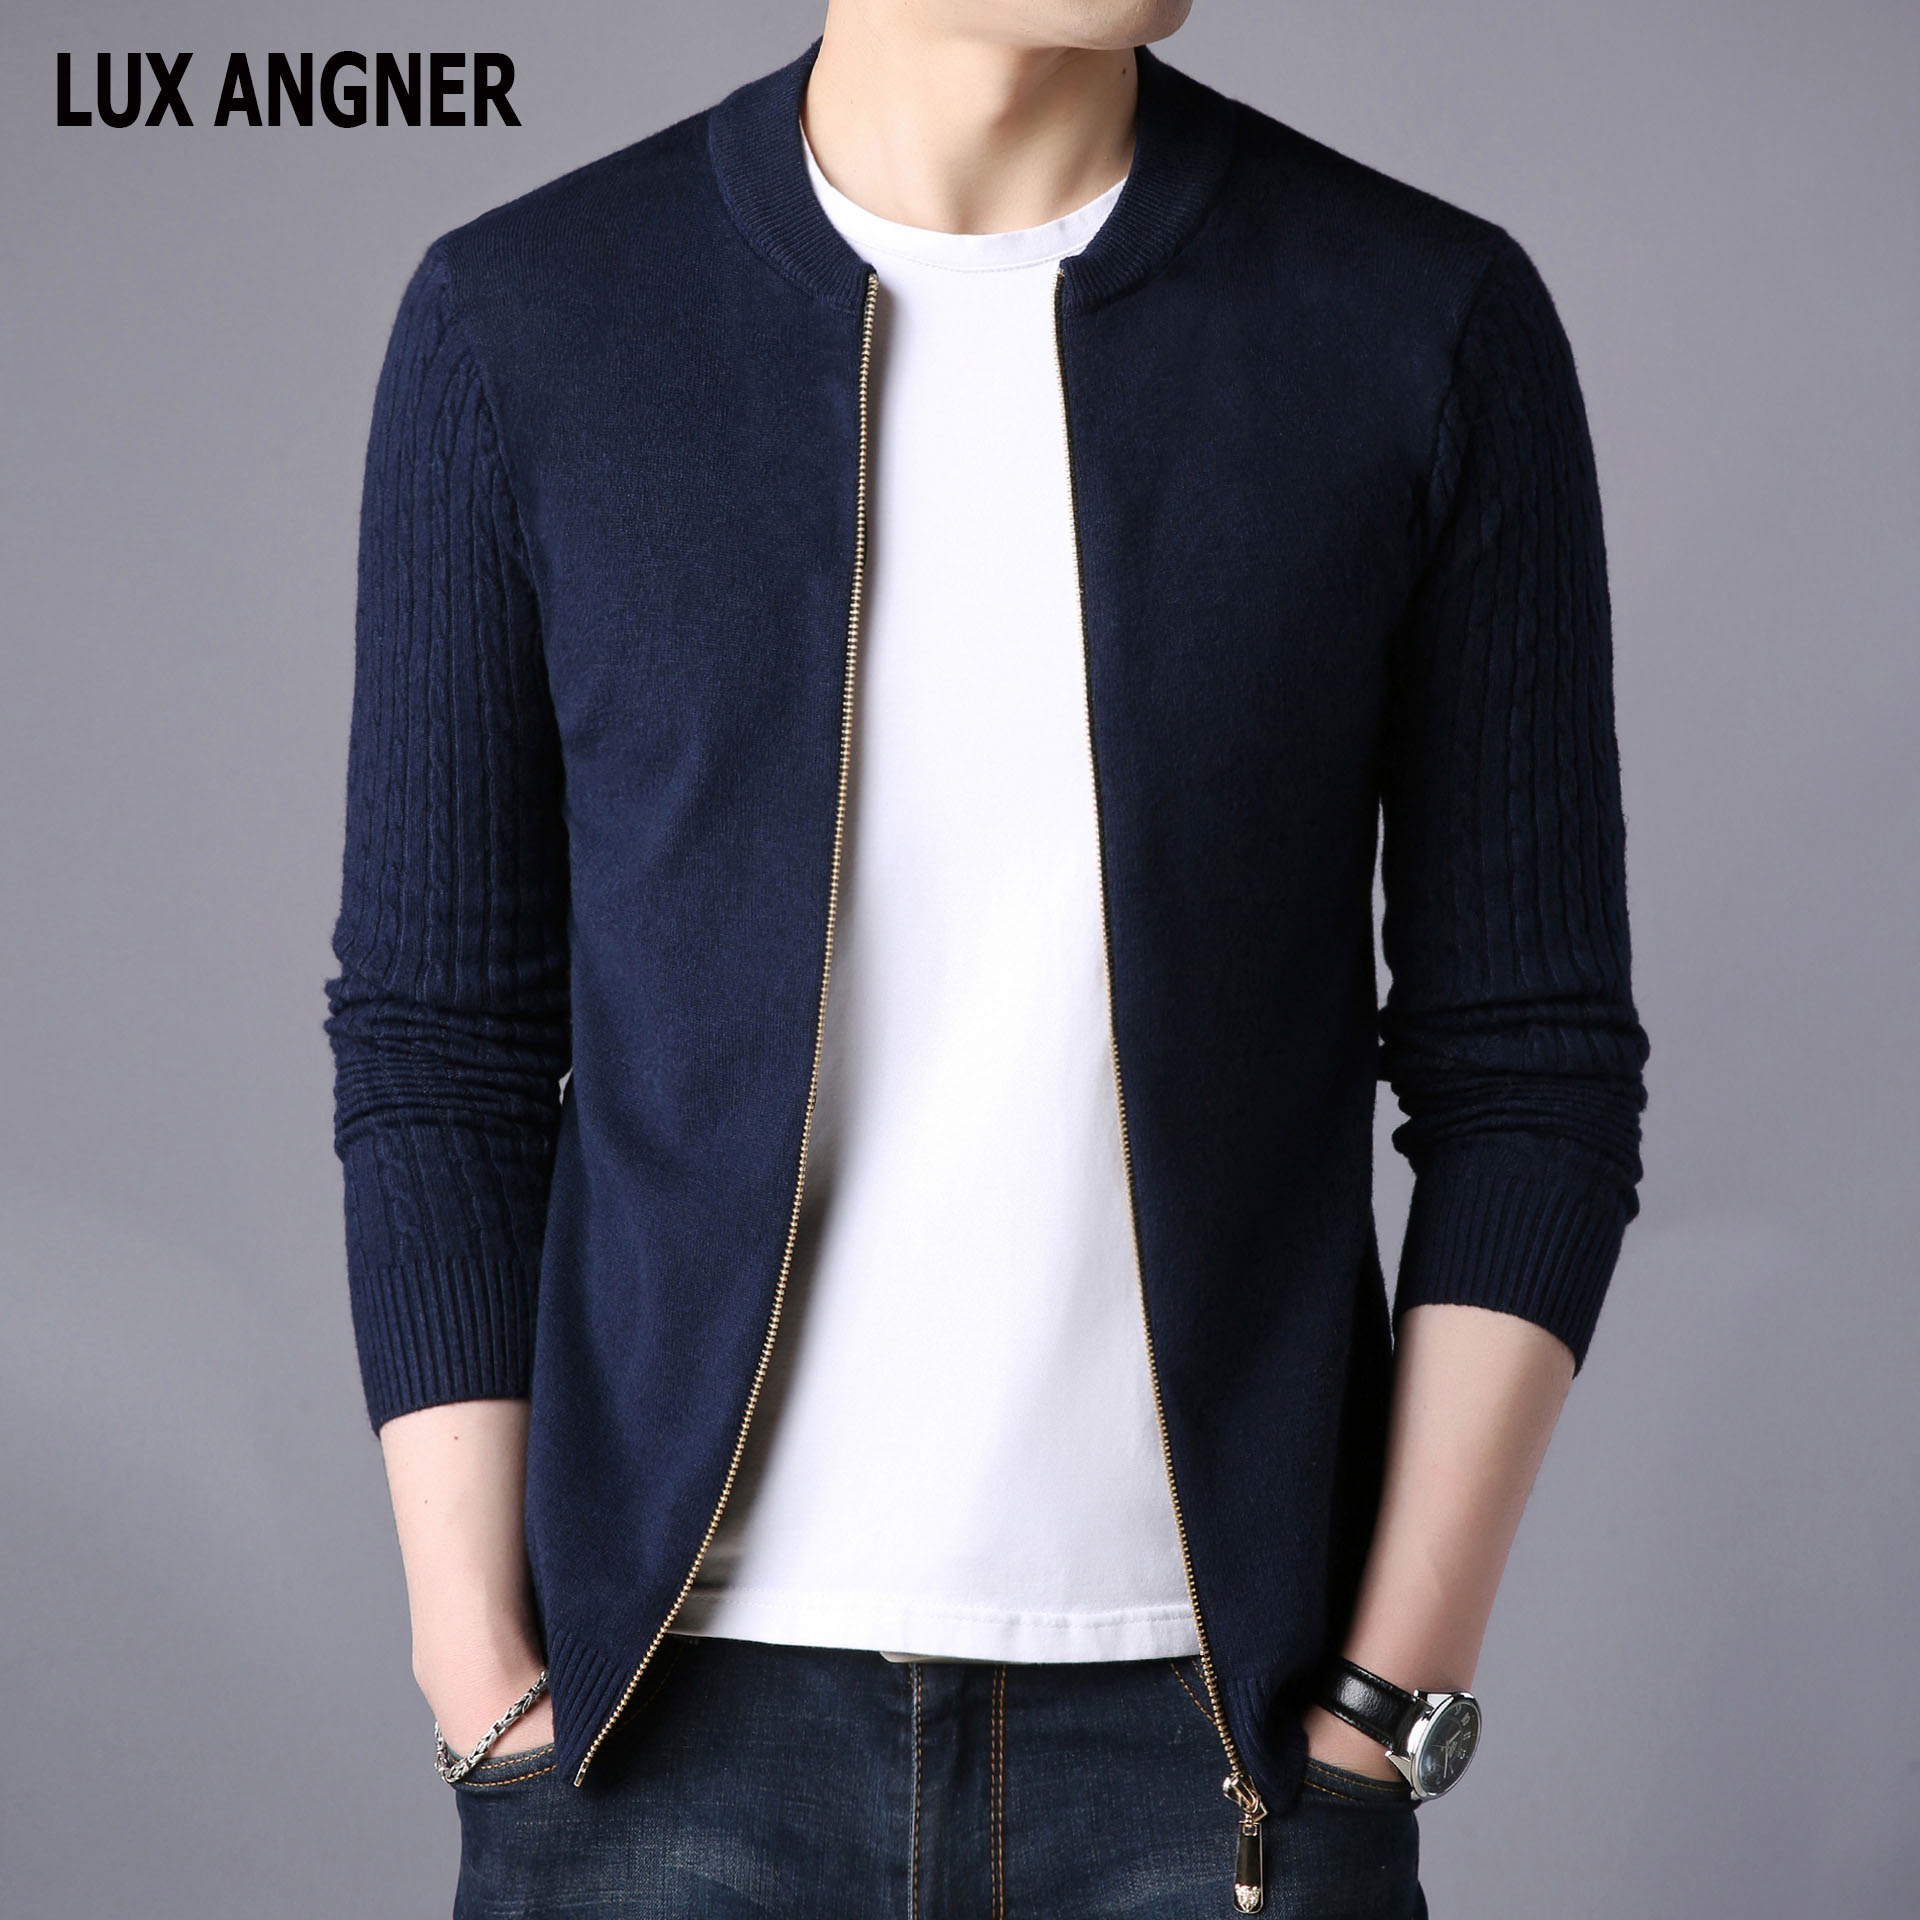 LUX ANGNER Men's Cardigan Sweater Men Long Sleeve Slim Fit Casual Knitted Sweaters 2020 Korean Fashion Men's Clothing Casacos